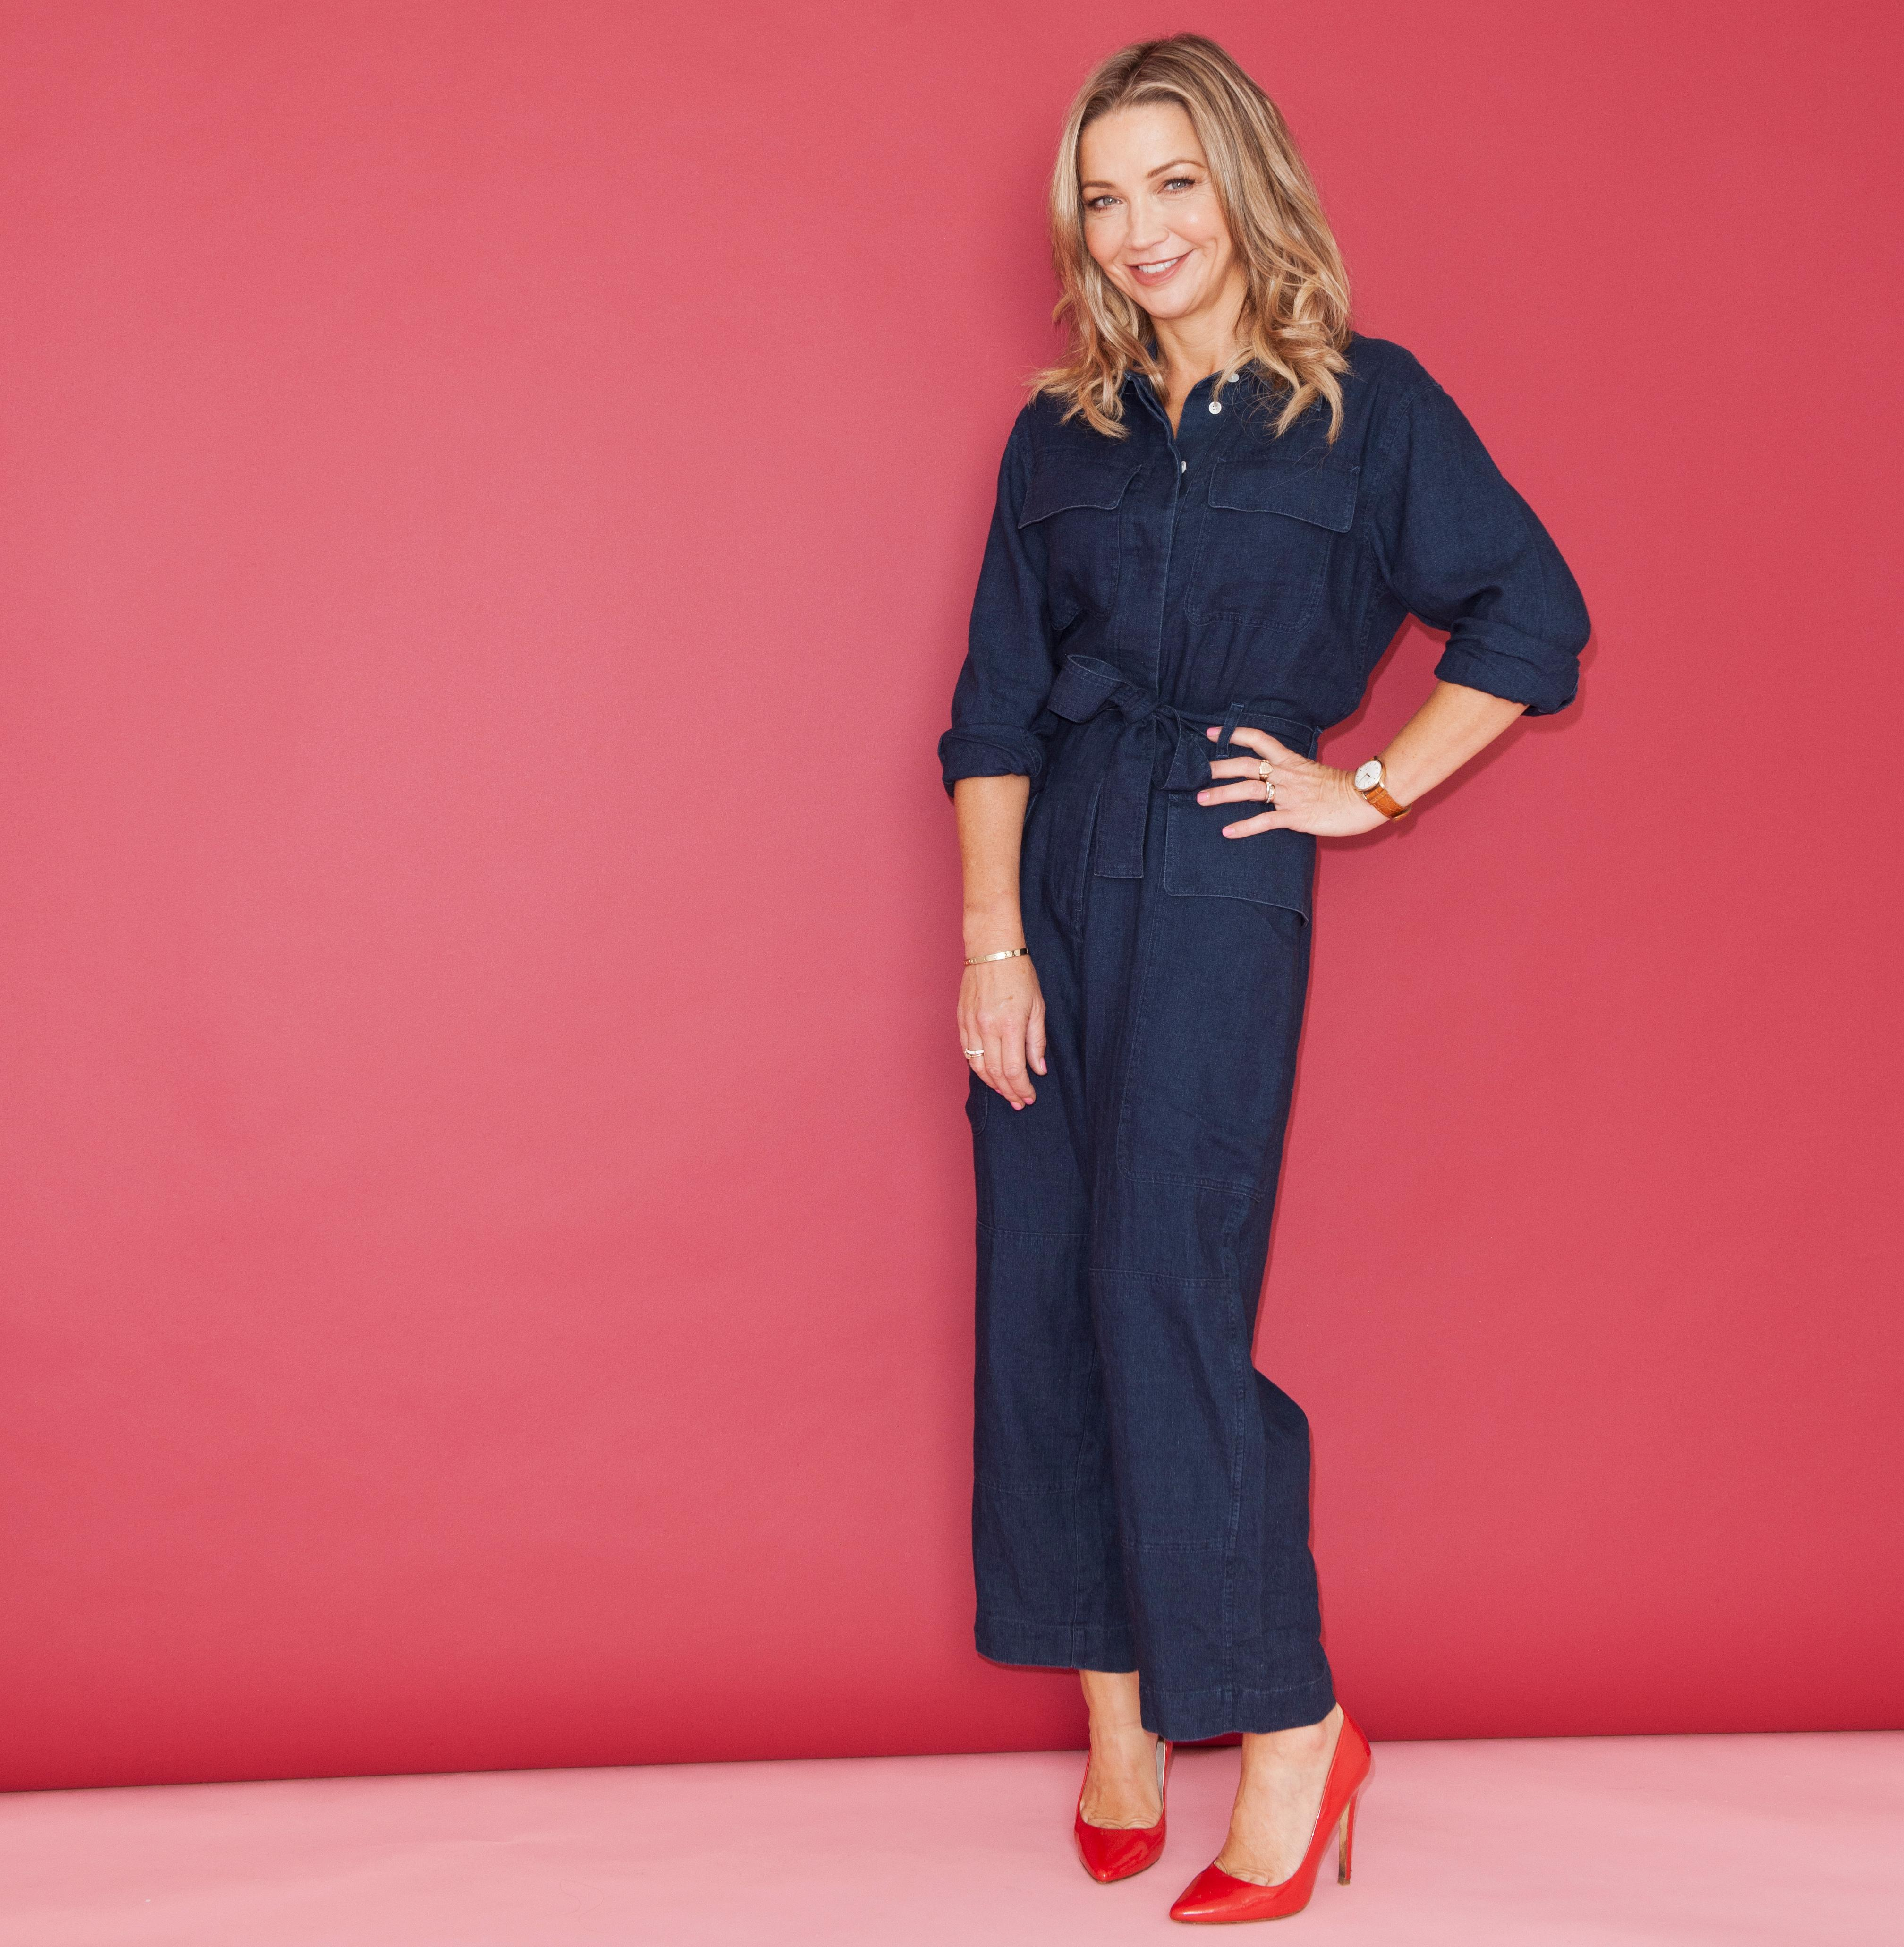 How to wear boilersuits